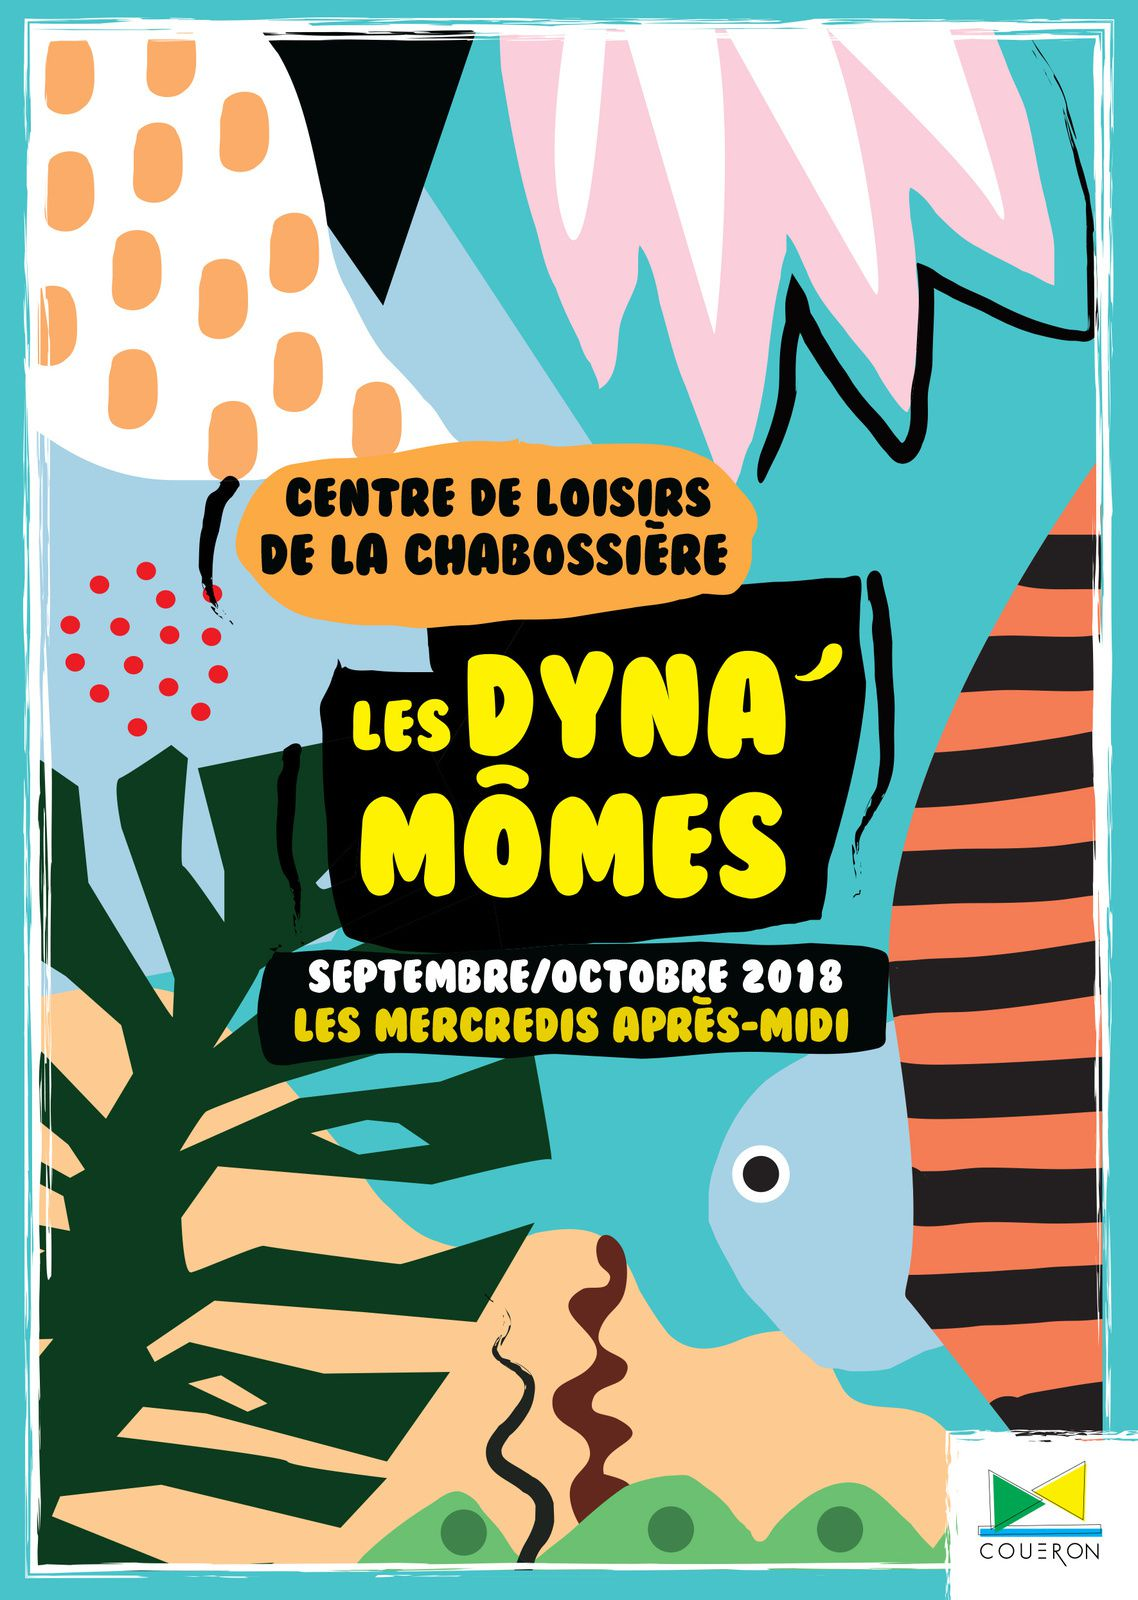 Dyna'momes